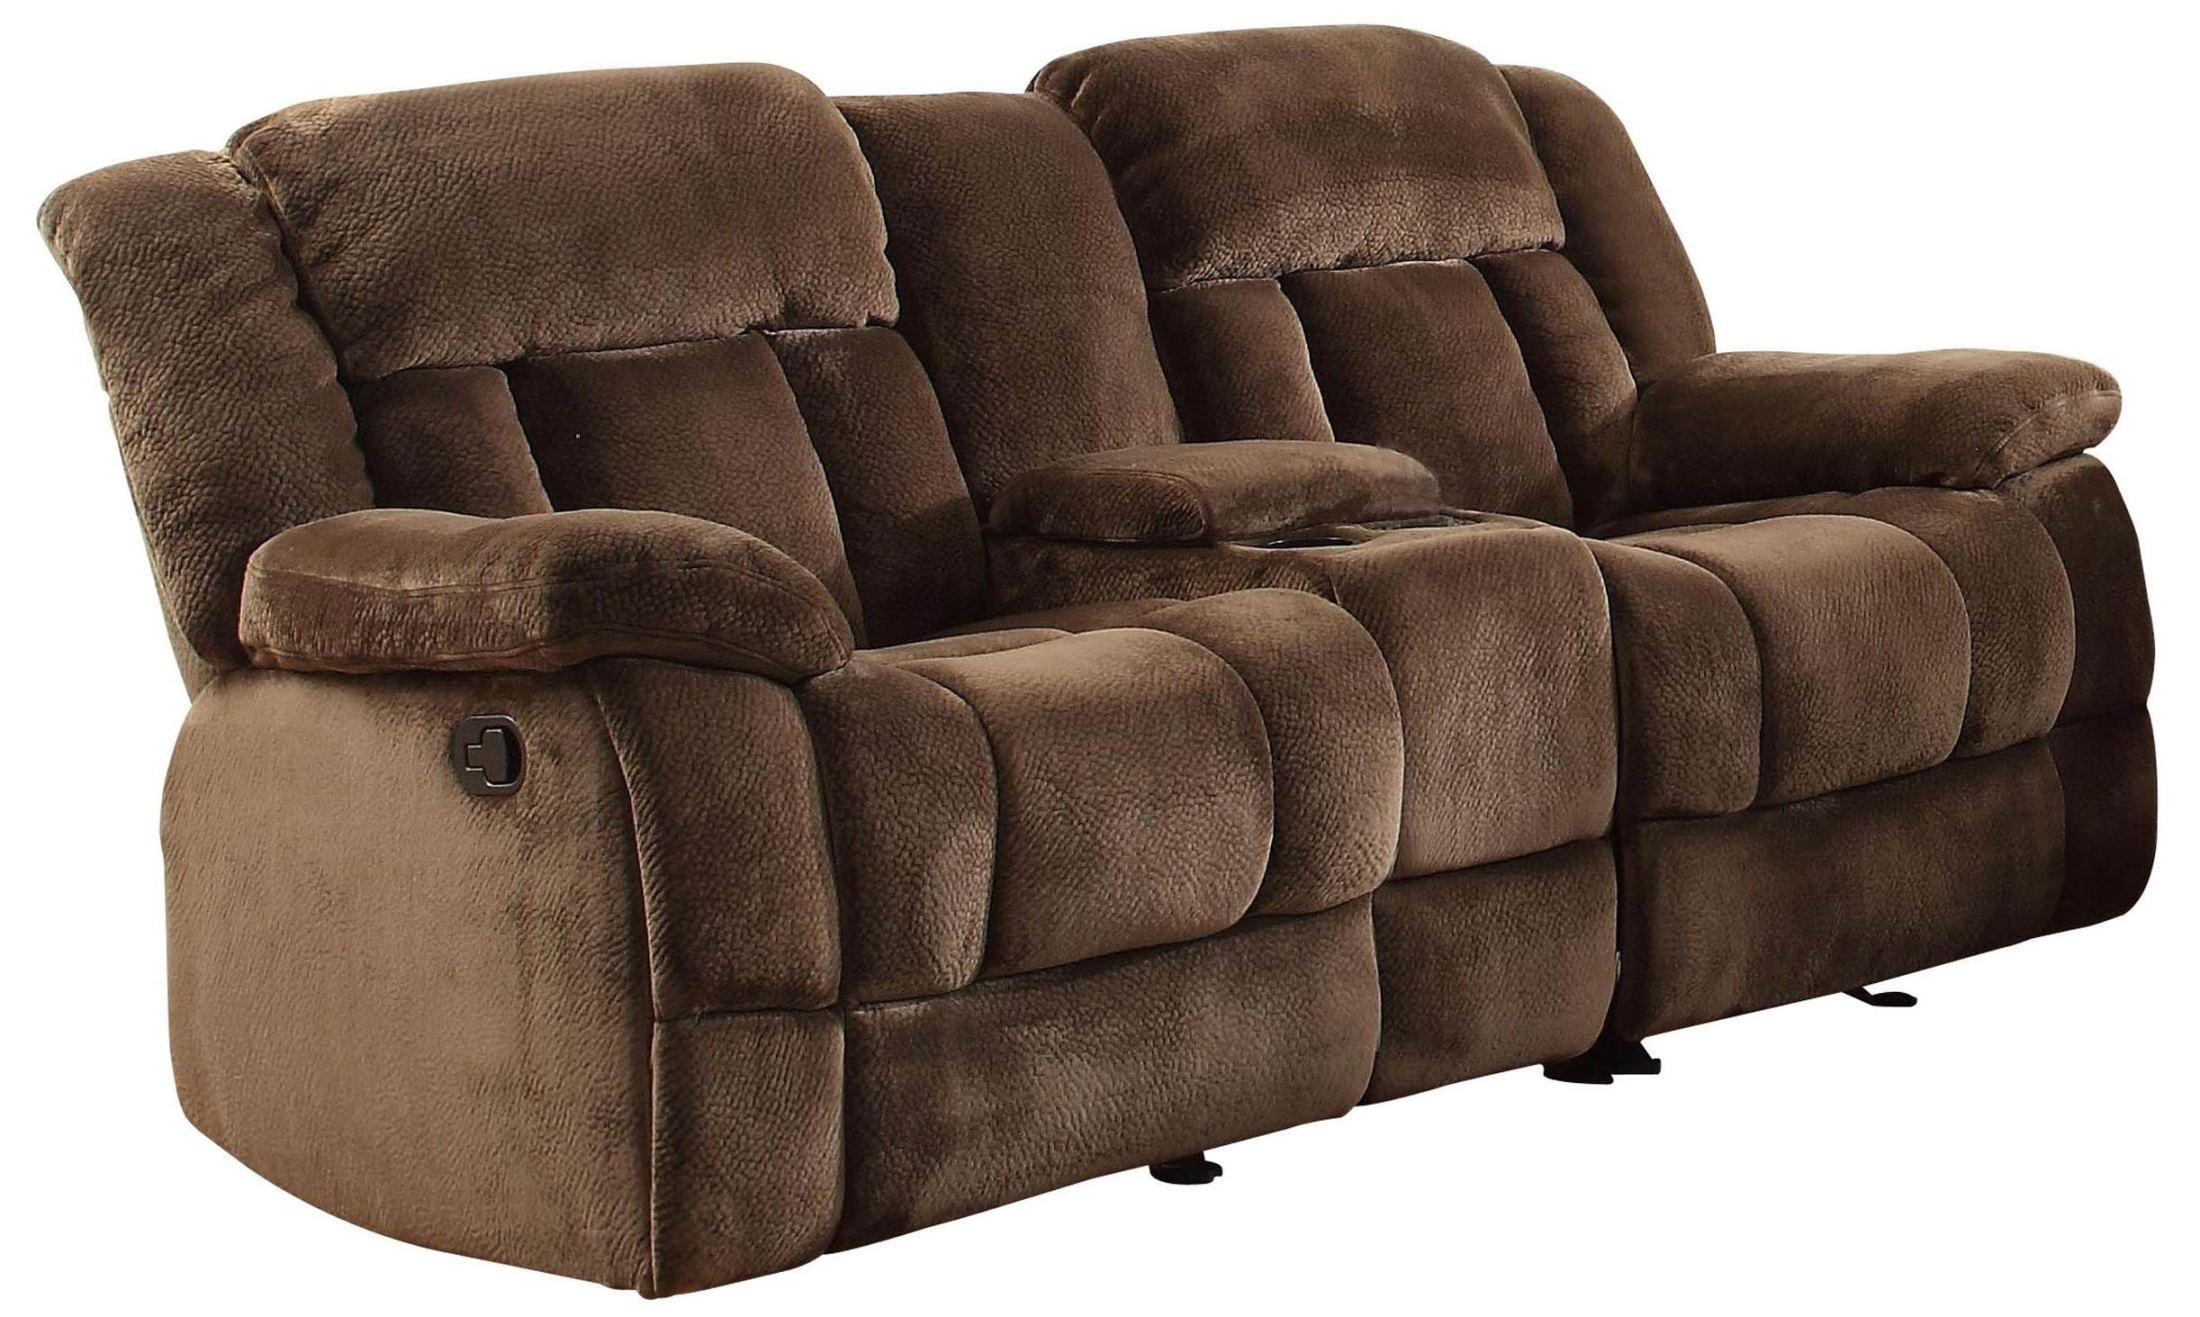 Laurelton chocolate double glider reclining loveseat with console from homelegance 11689 Reclining loveseat with center console